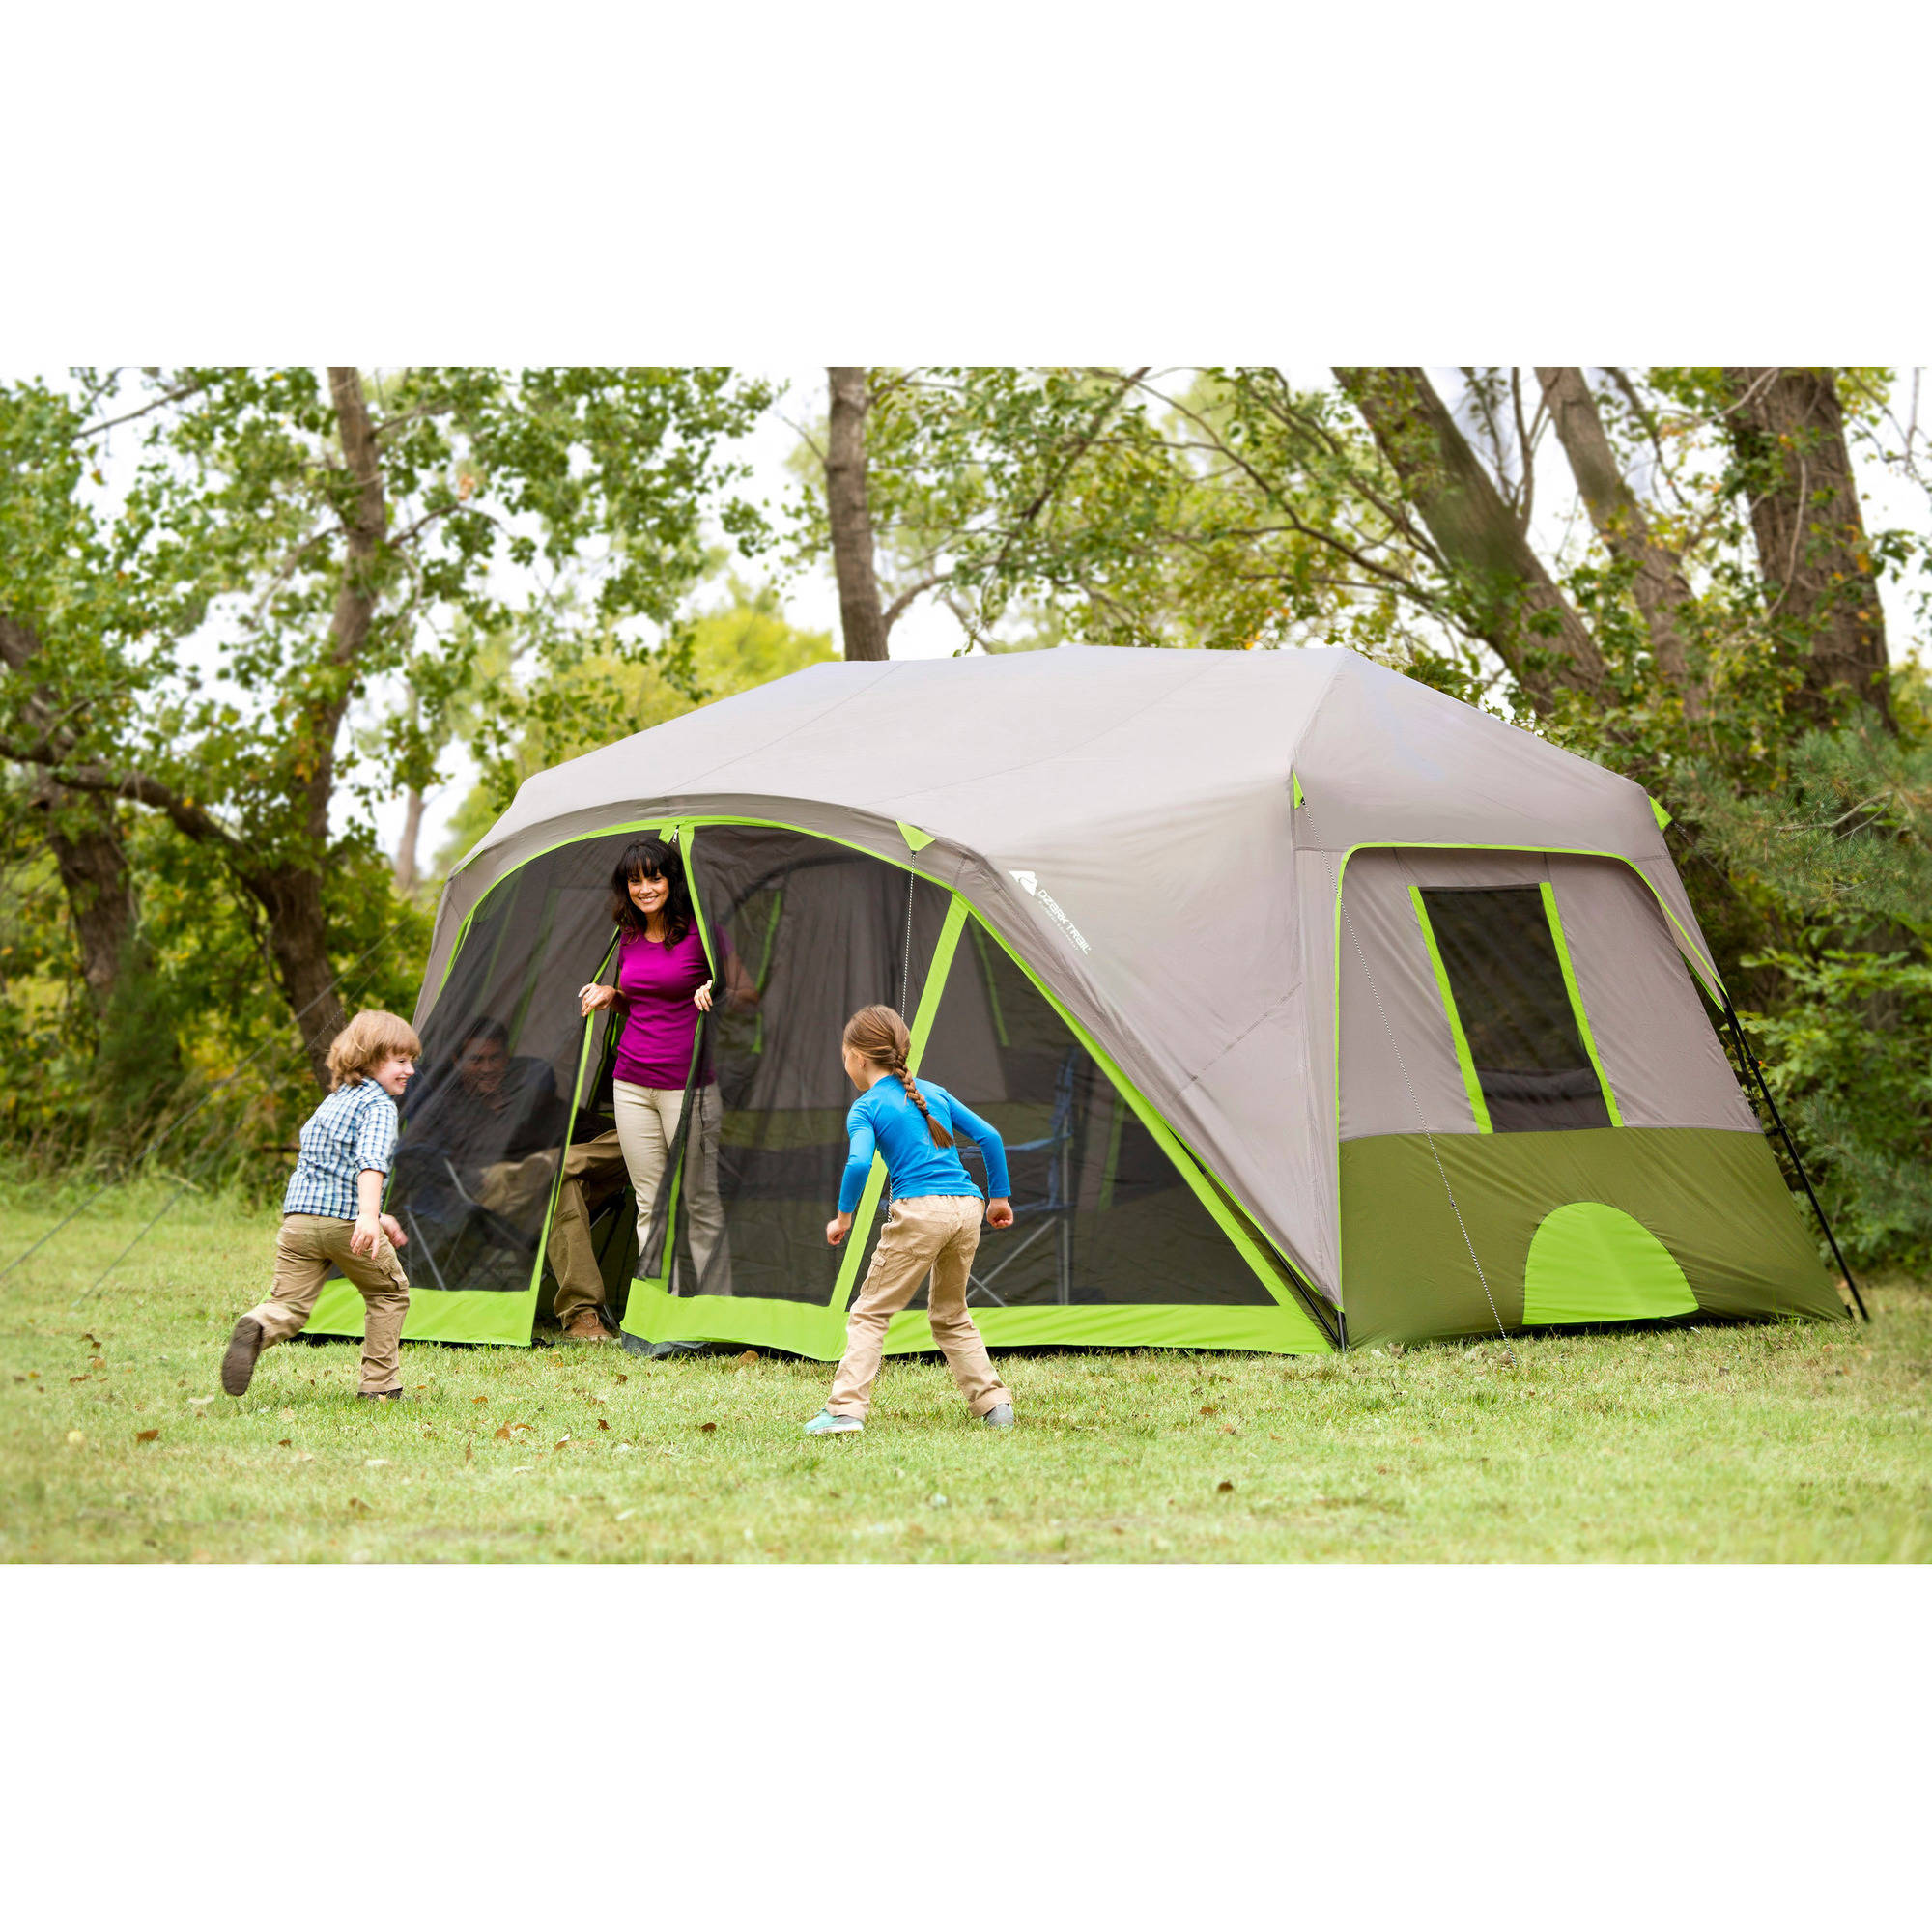 Lakeside Dome 4p Instant Tent Pop Up Tents  sc 1 st  Best Tent 2017 & Coleman Instant Lakeside Dome Tent 4 Person - Best Tent 2017